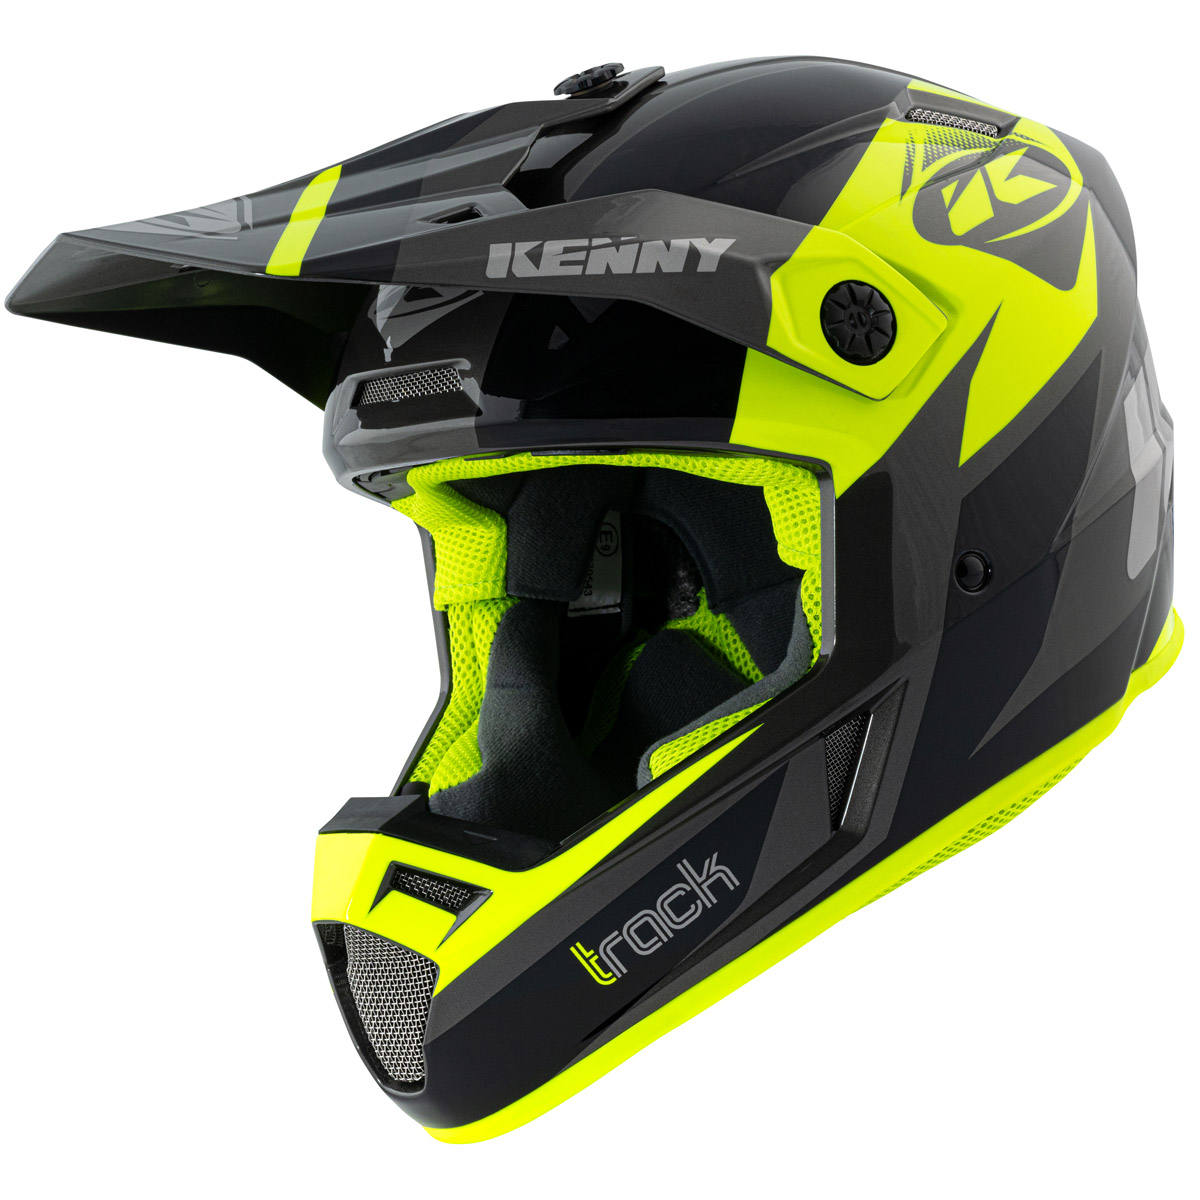 211-0303021-46 2021 Kenny Racing Track Helmet Black Neon Yellow Crosshelm Casque Cross Enduro Motocross Helm